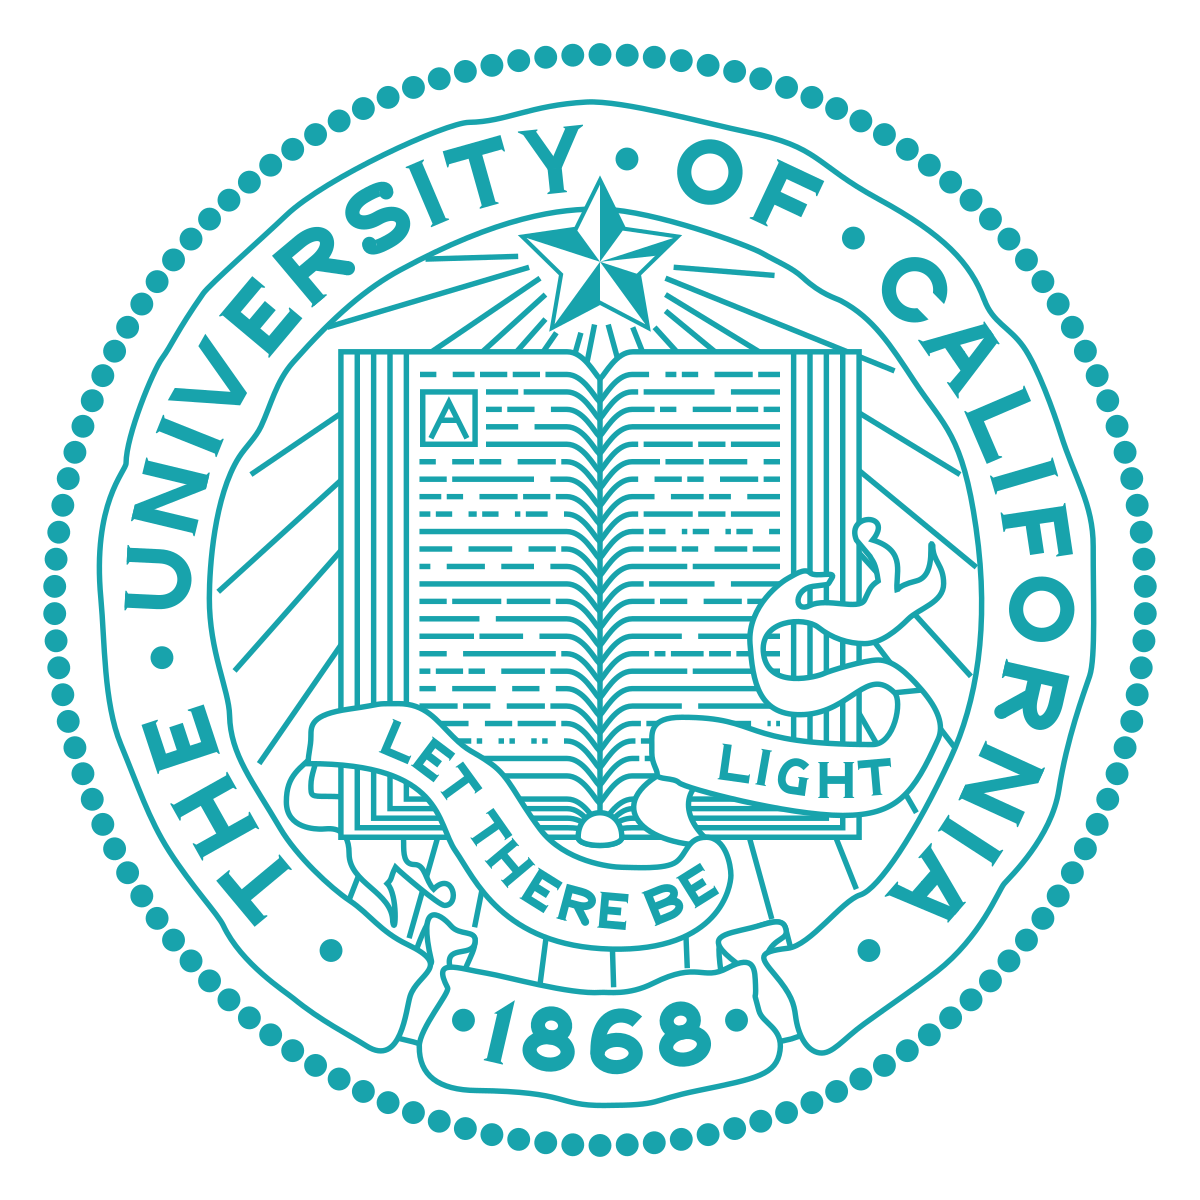 The University of California 1868 seal.